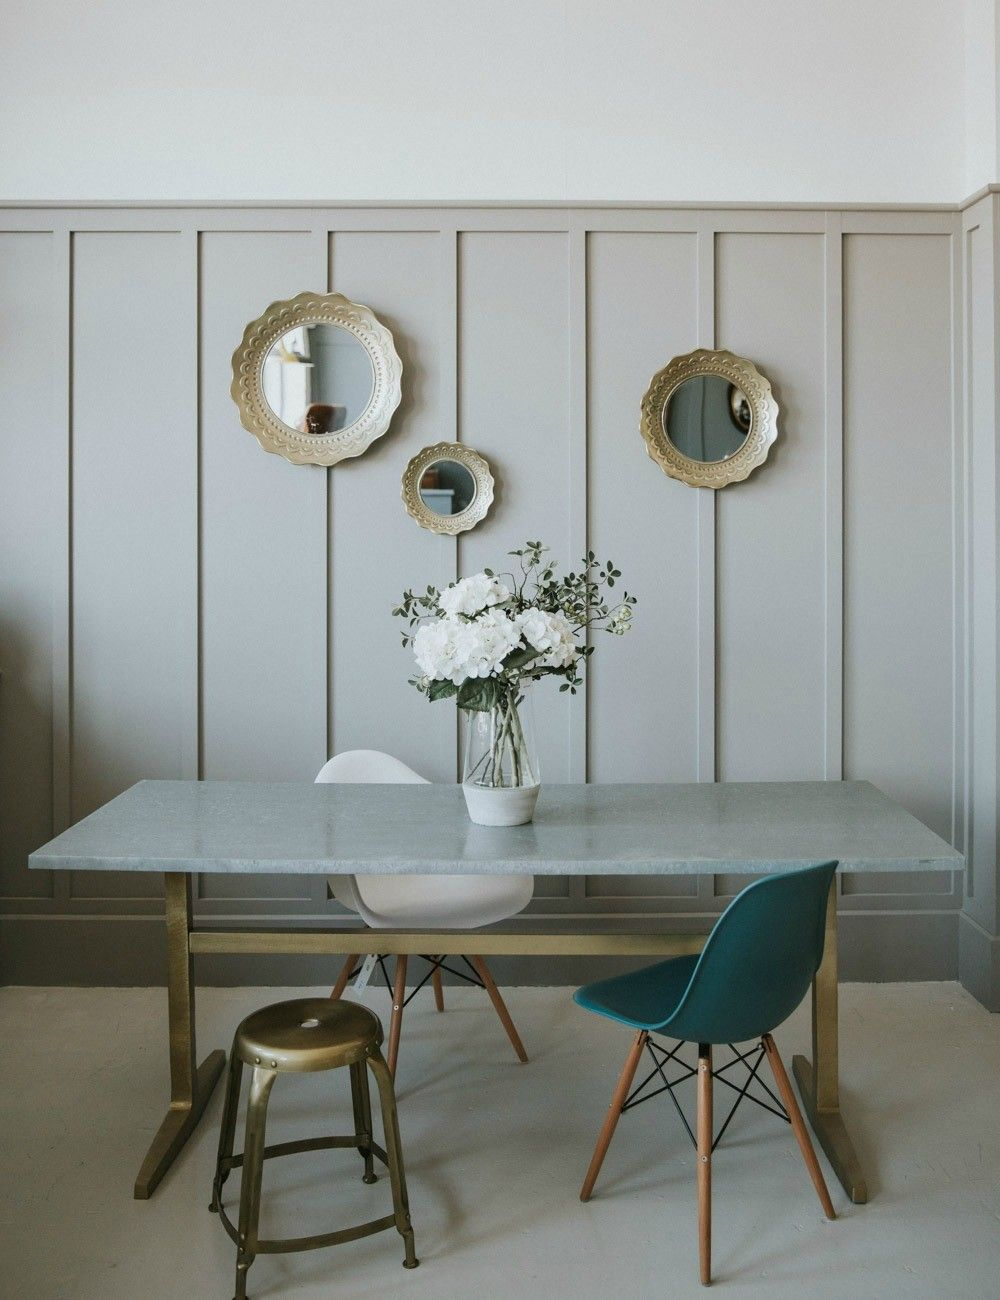 Zinc & Brass Industrial Table at Rose & Grey | Wall Treatment ...